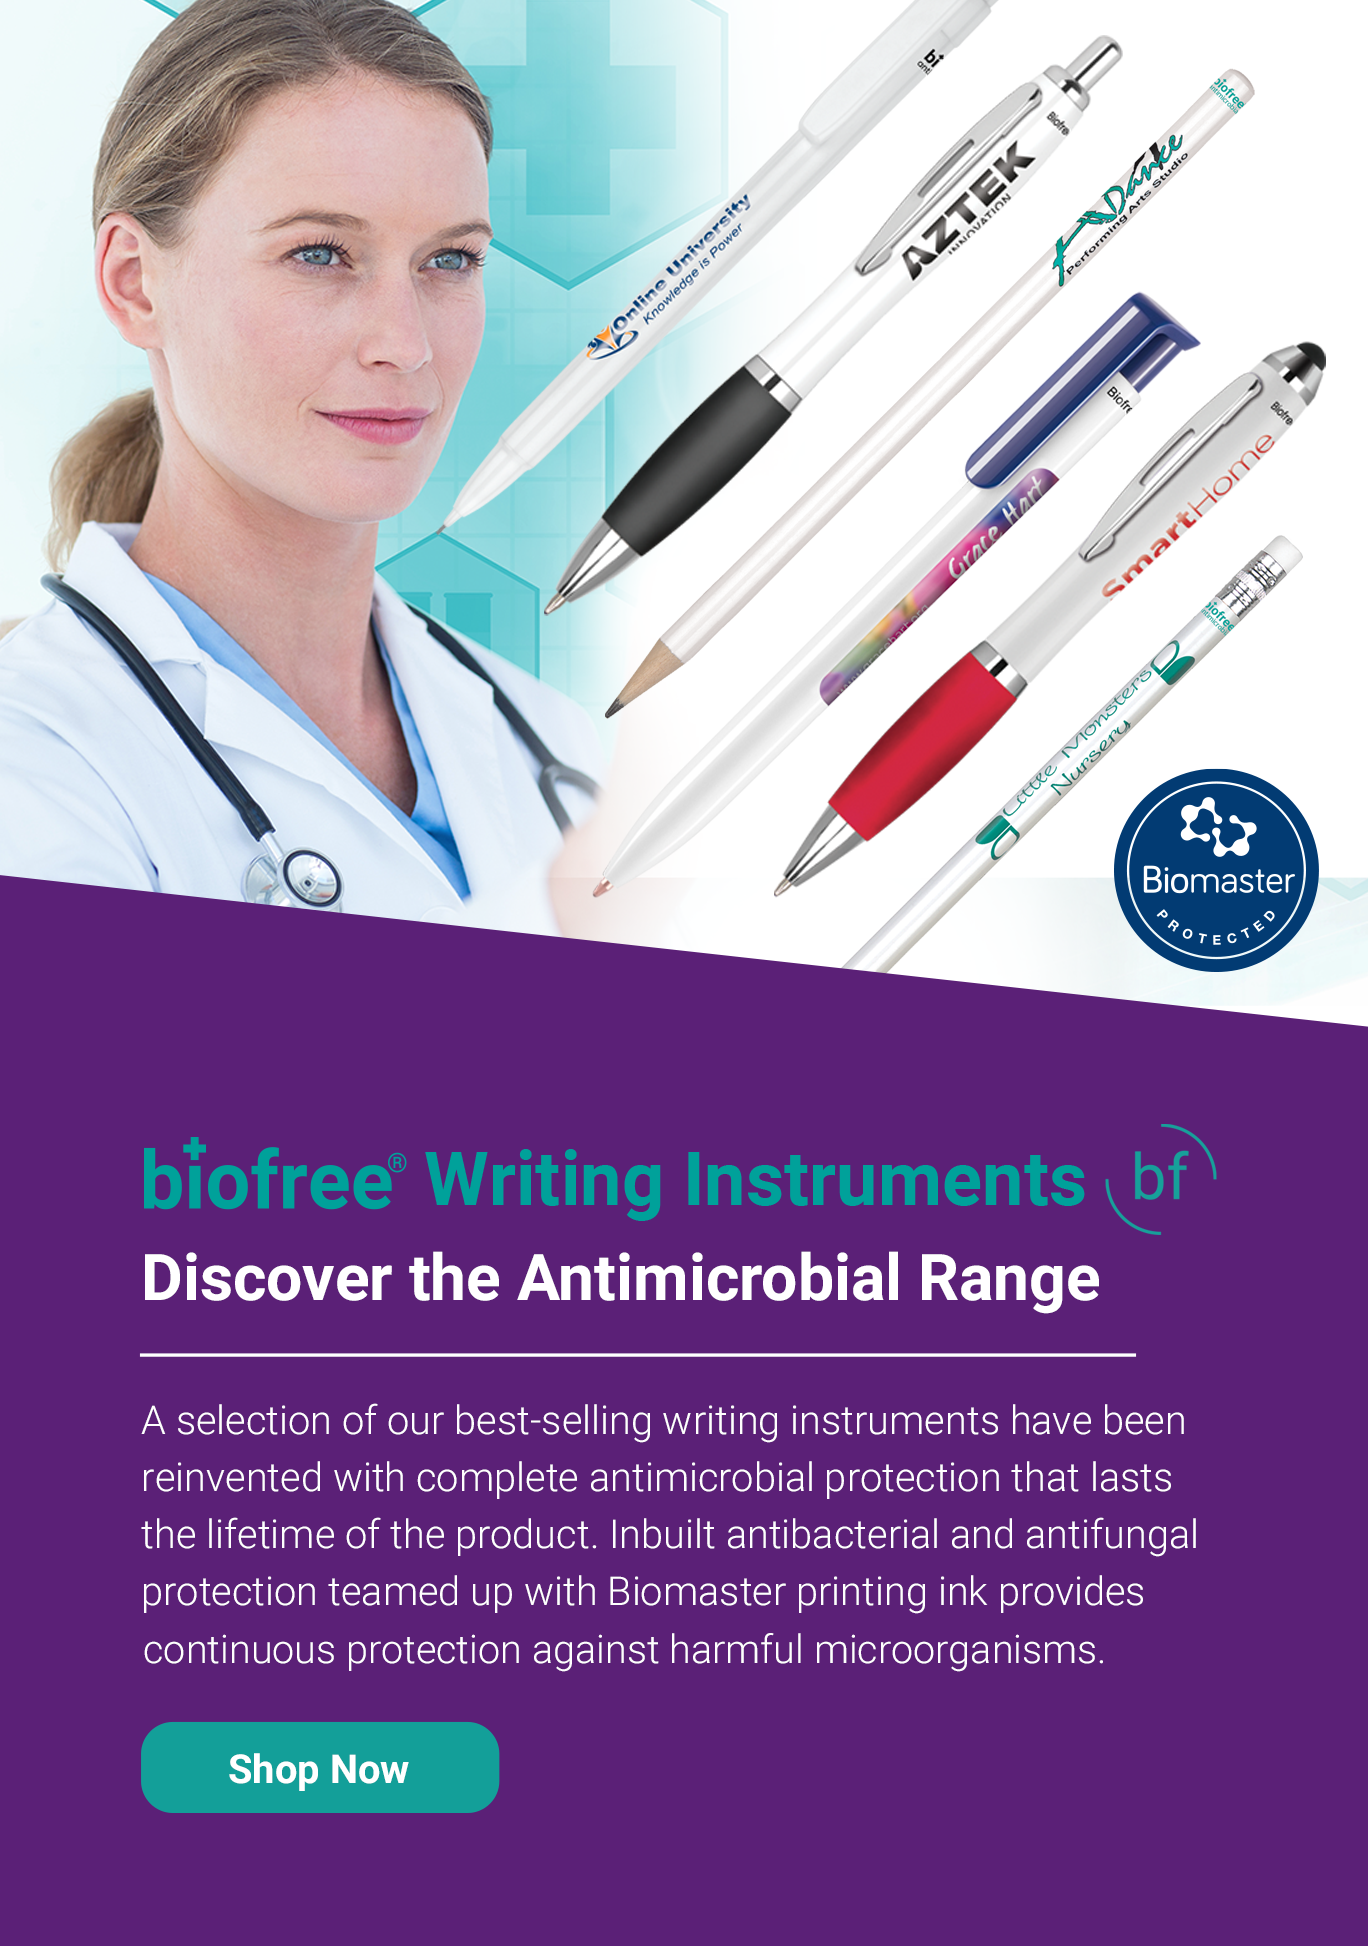 Biofree Writing Instruments